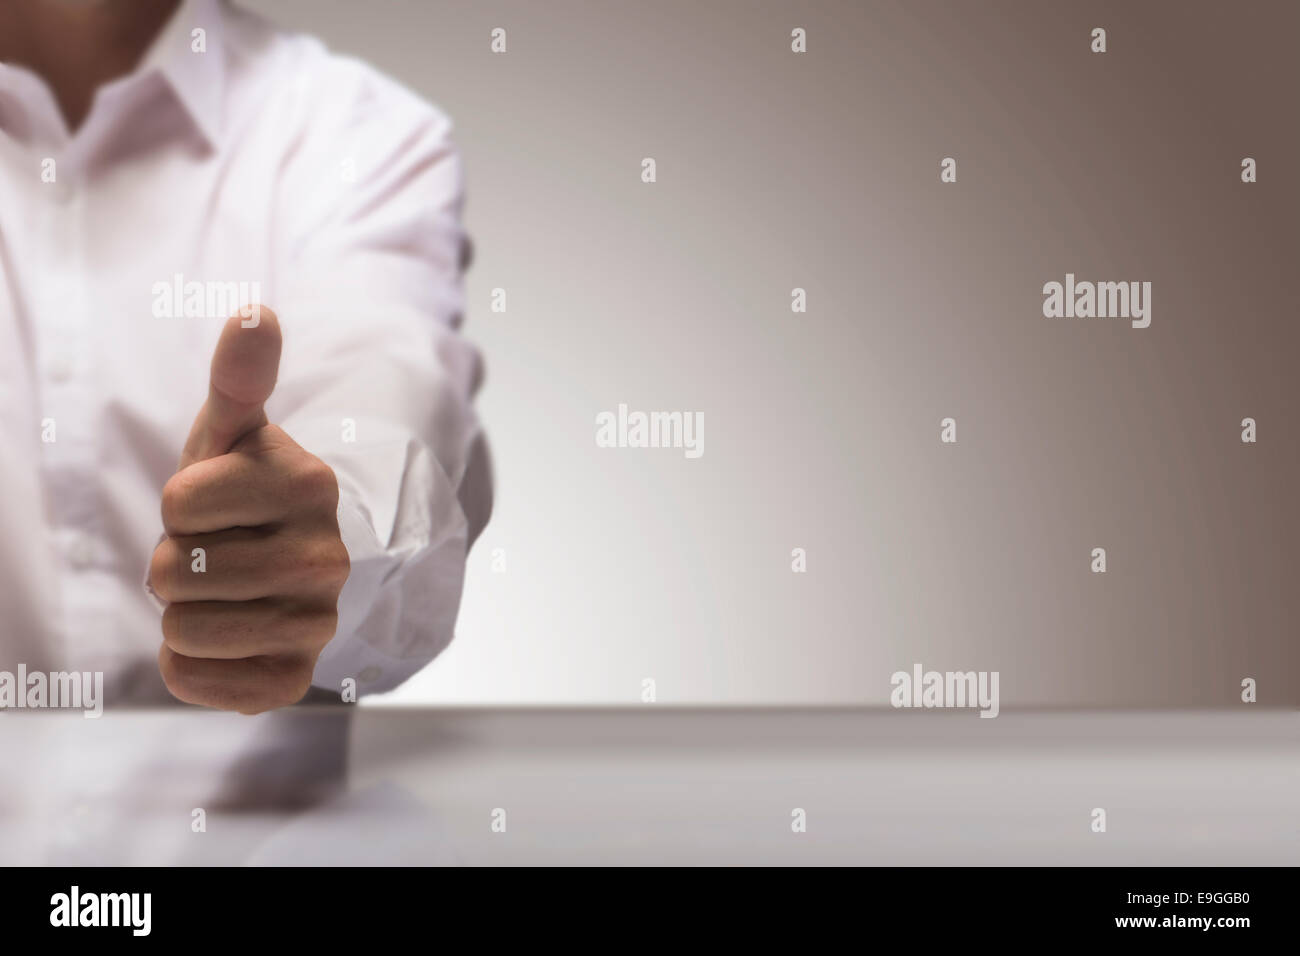 Man with one thumb up at the background of a glossy table and copy space on the right, concept image for illustration - Stock Image